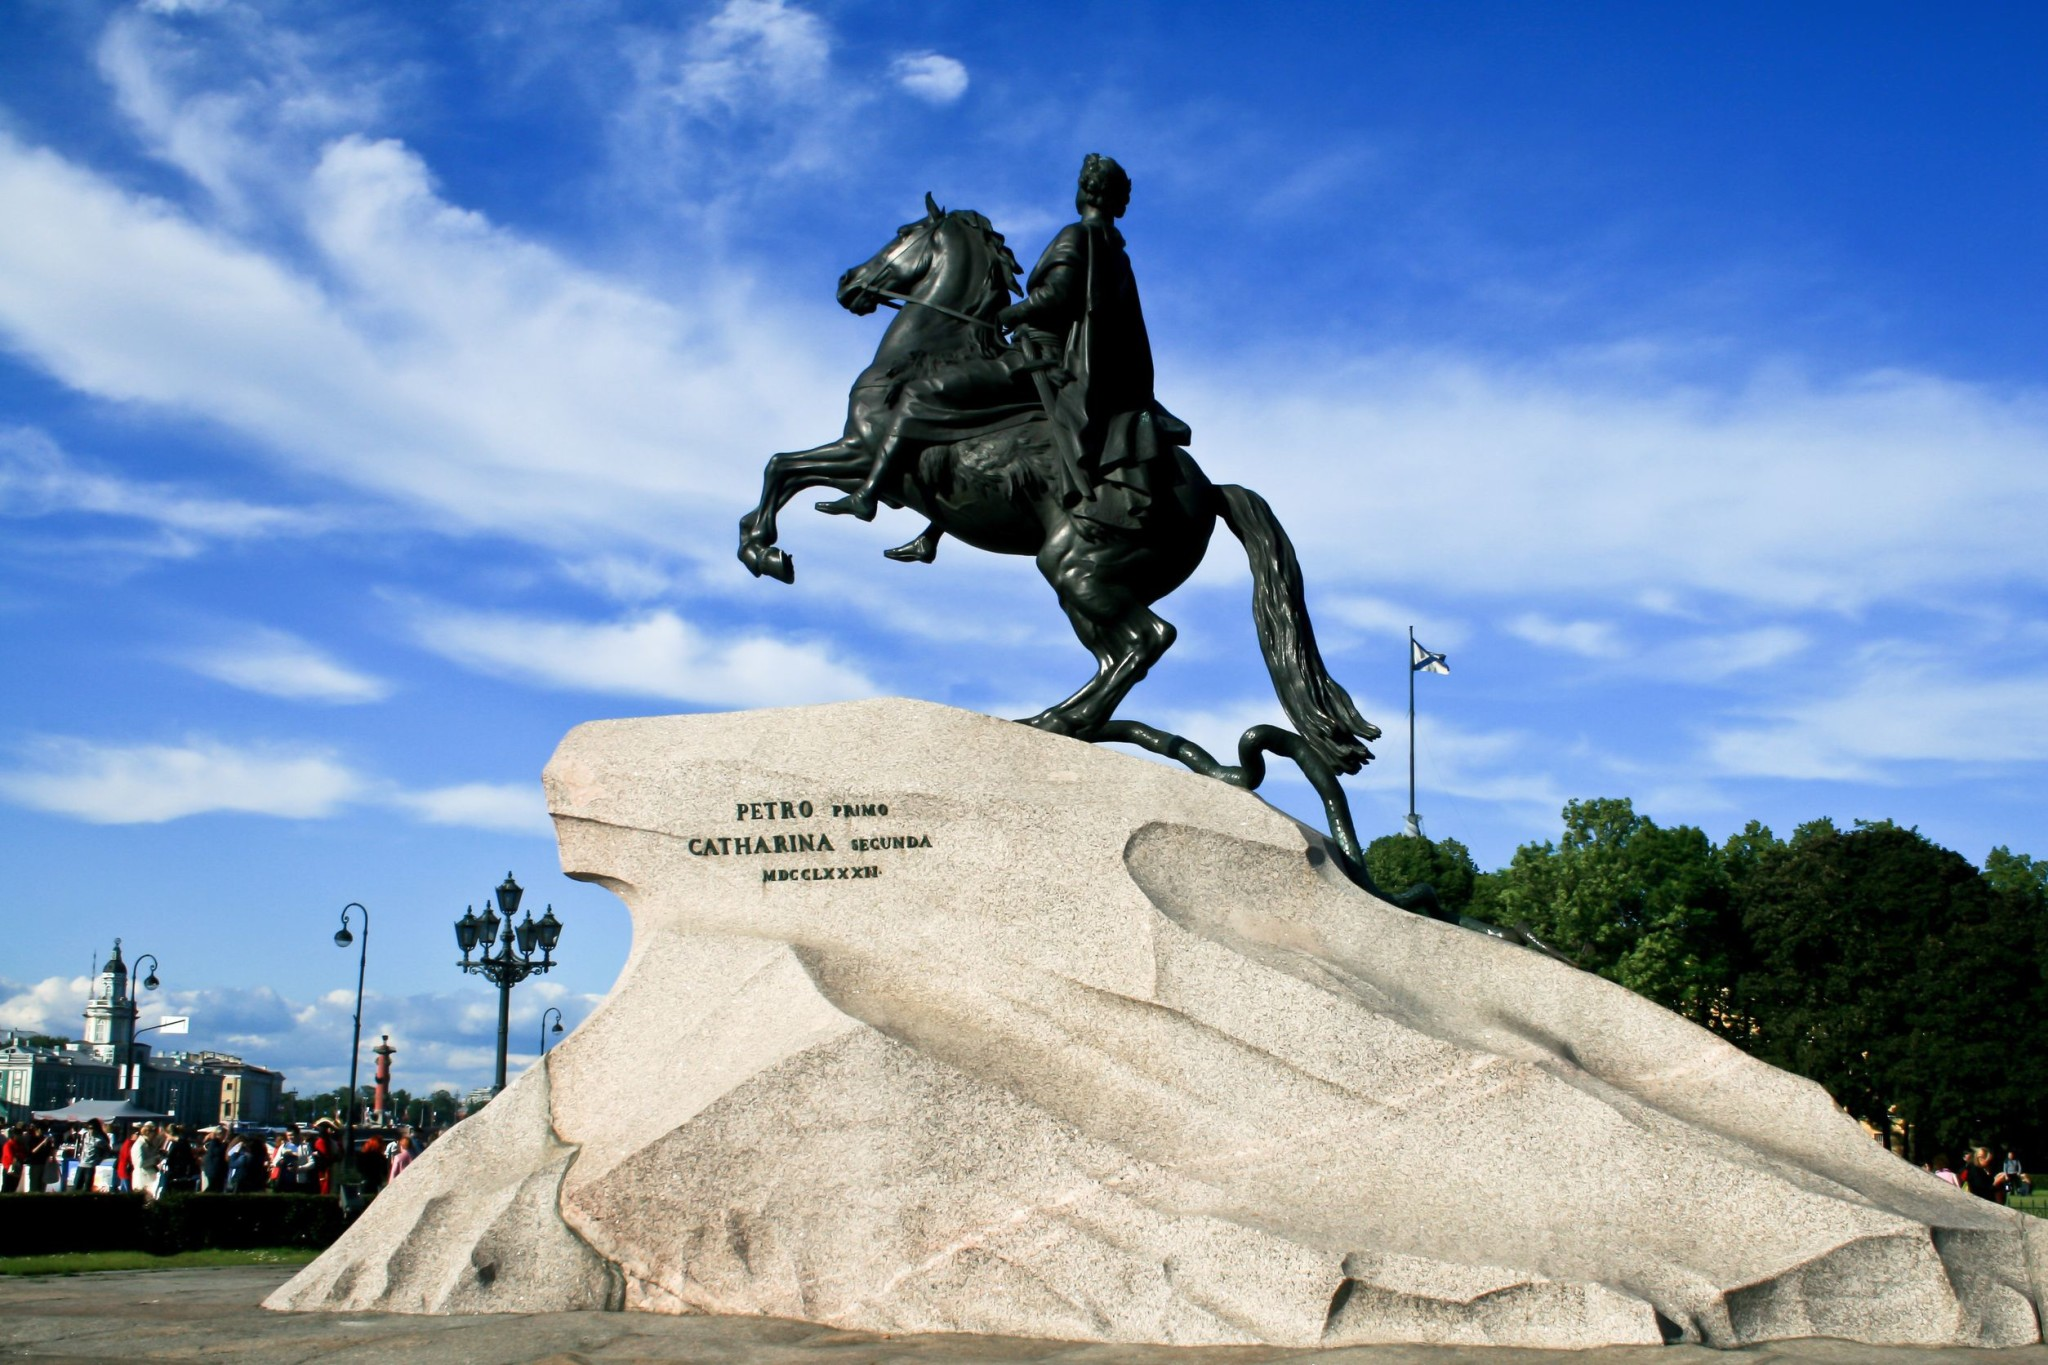 Peter the Great on a horse in Saint Petersburg, Russia